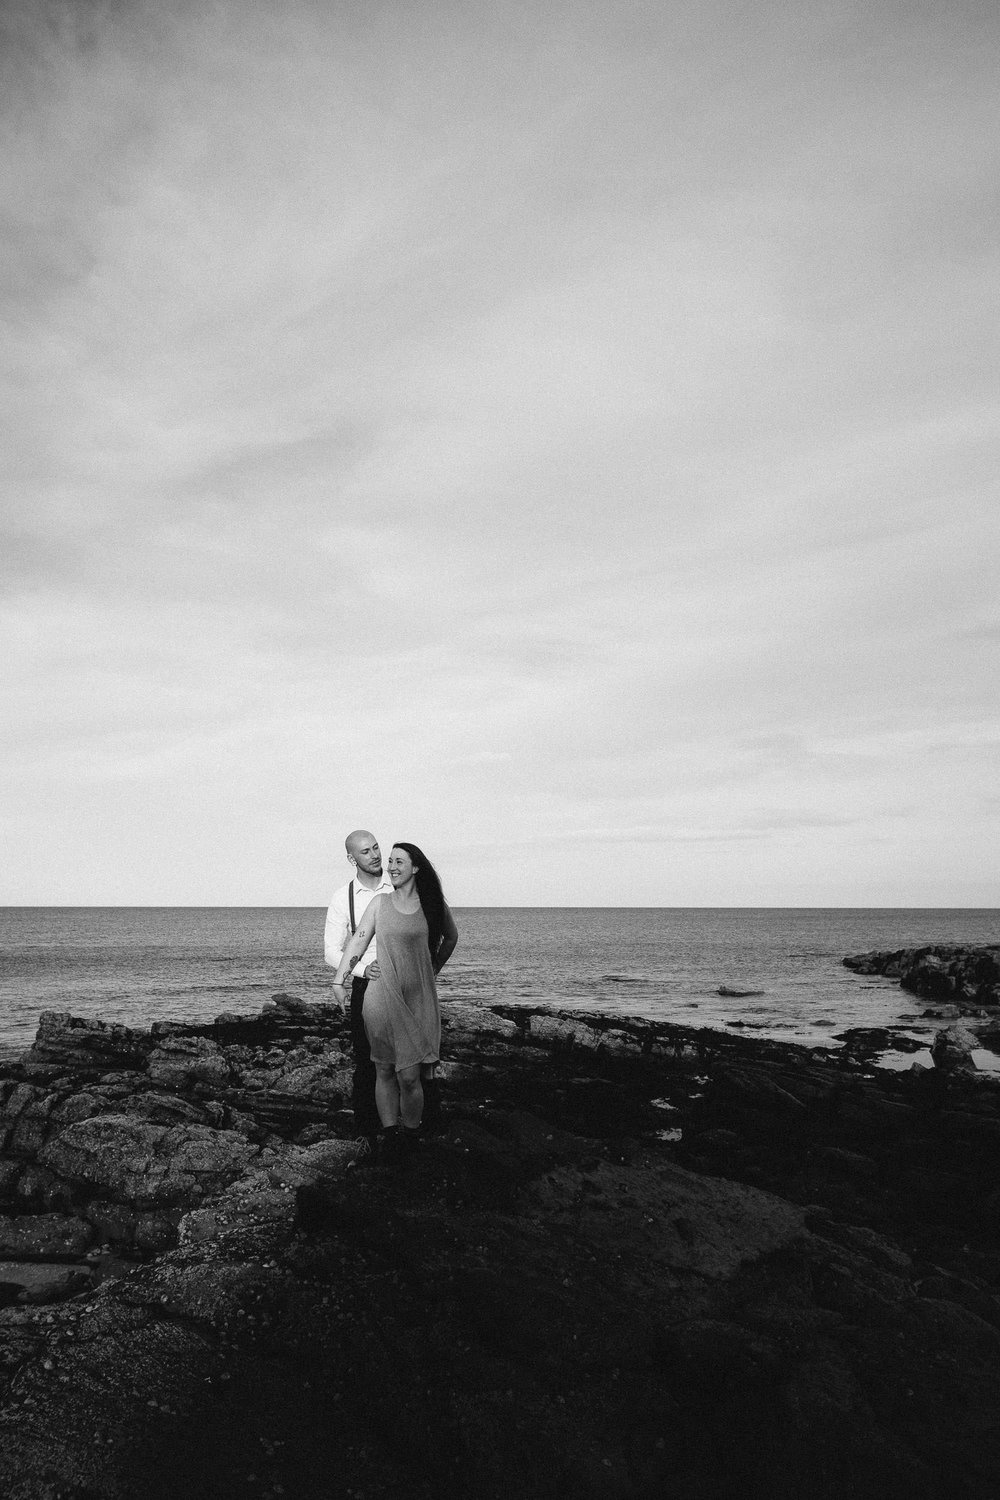 Back and white photo of couple cuddling on rocky beach